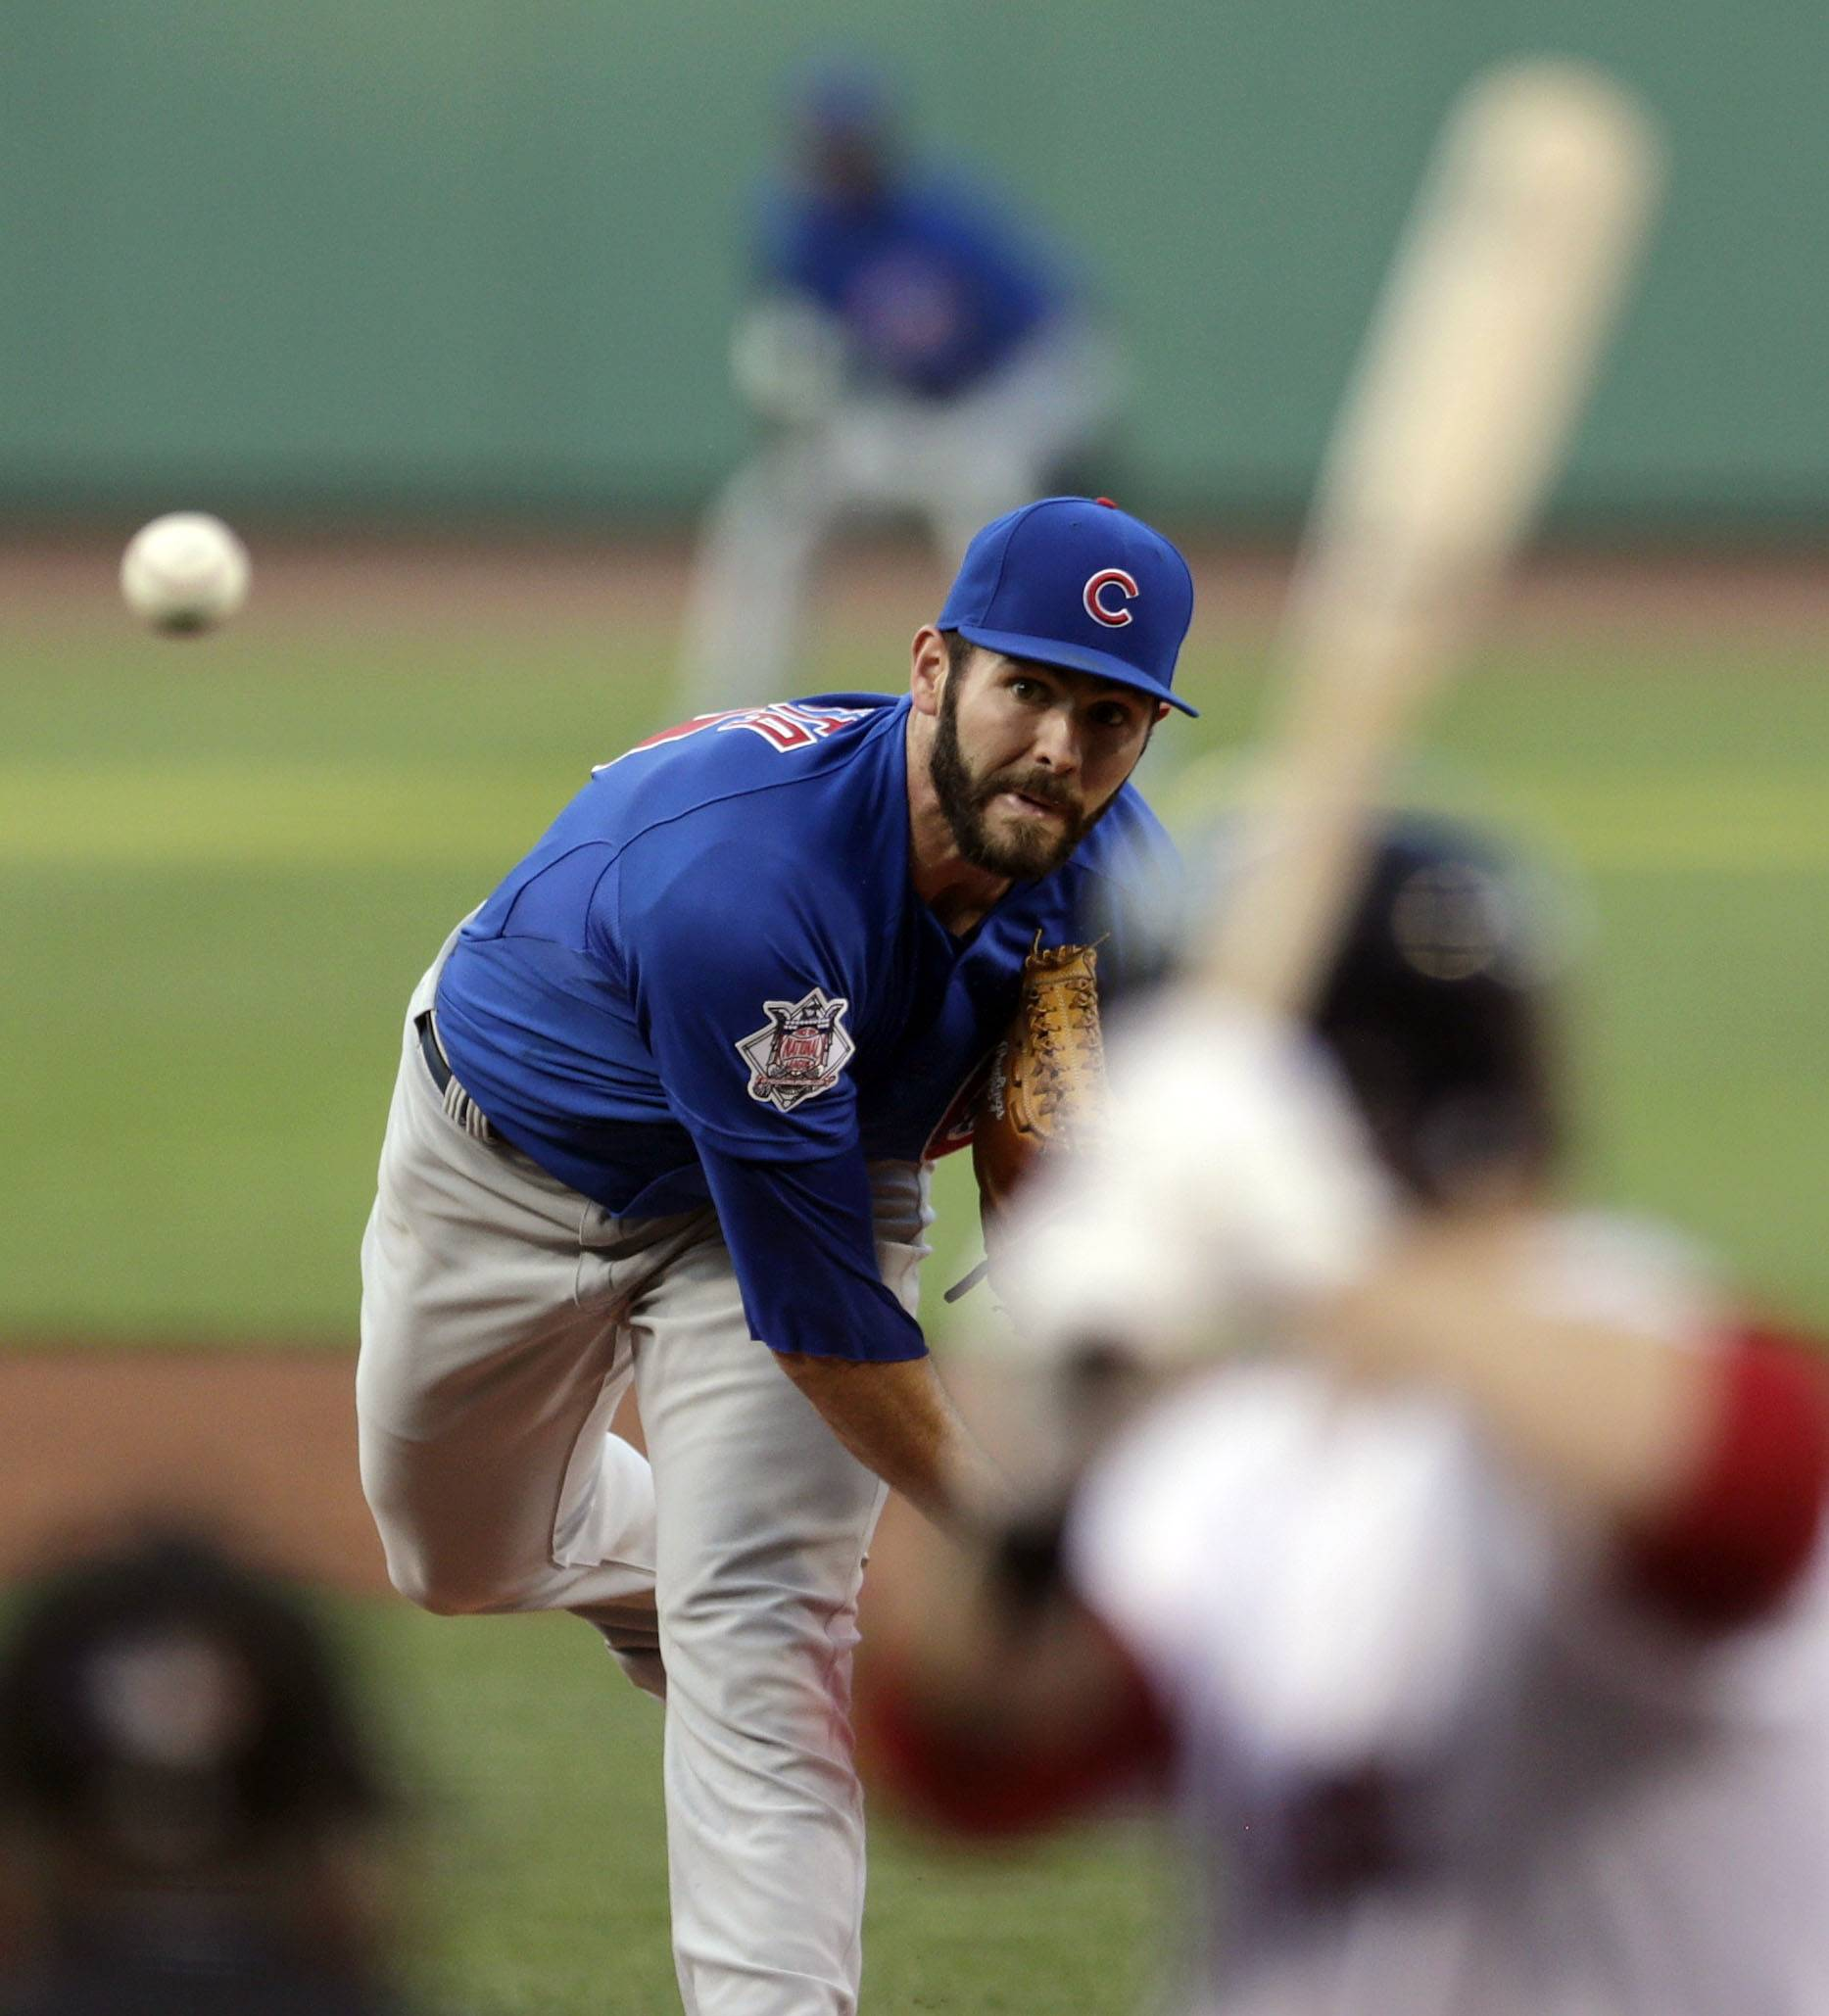 Cubs starter Jake Arrieta walked one and struck out 10 before giving up his first hit with two outs in the eighth inning Monday night. He left to a standing ovation from Red Sox fans.